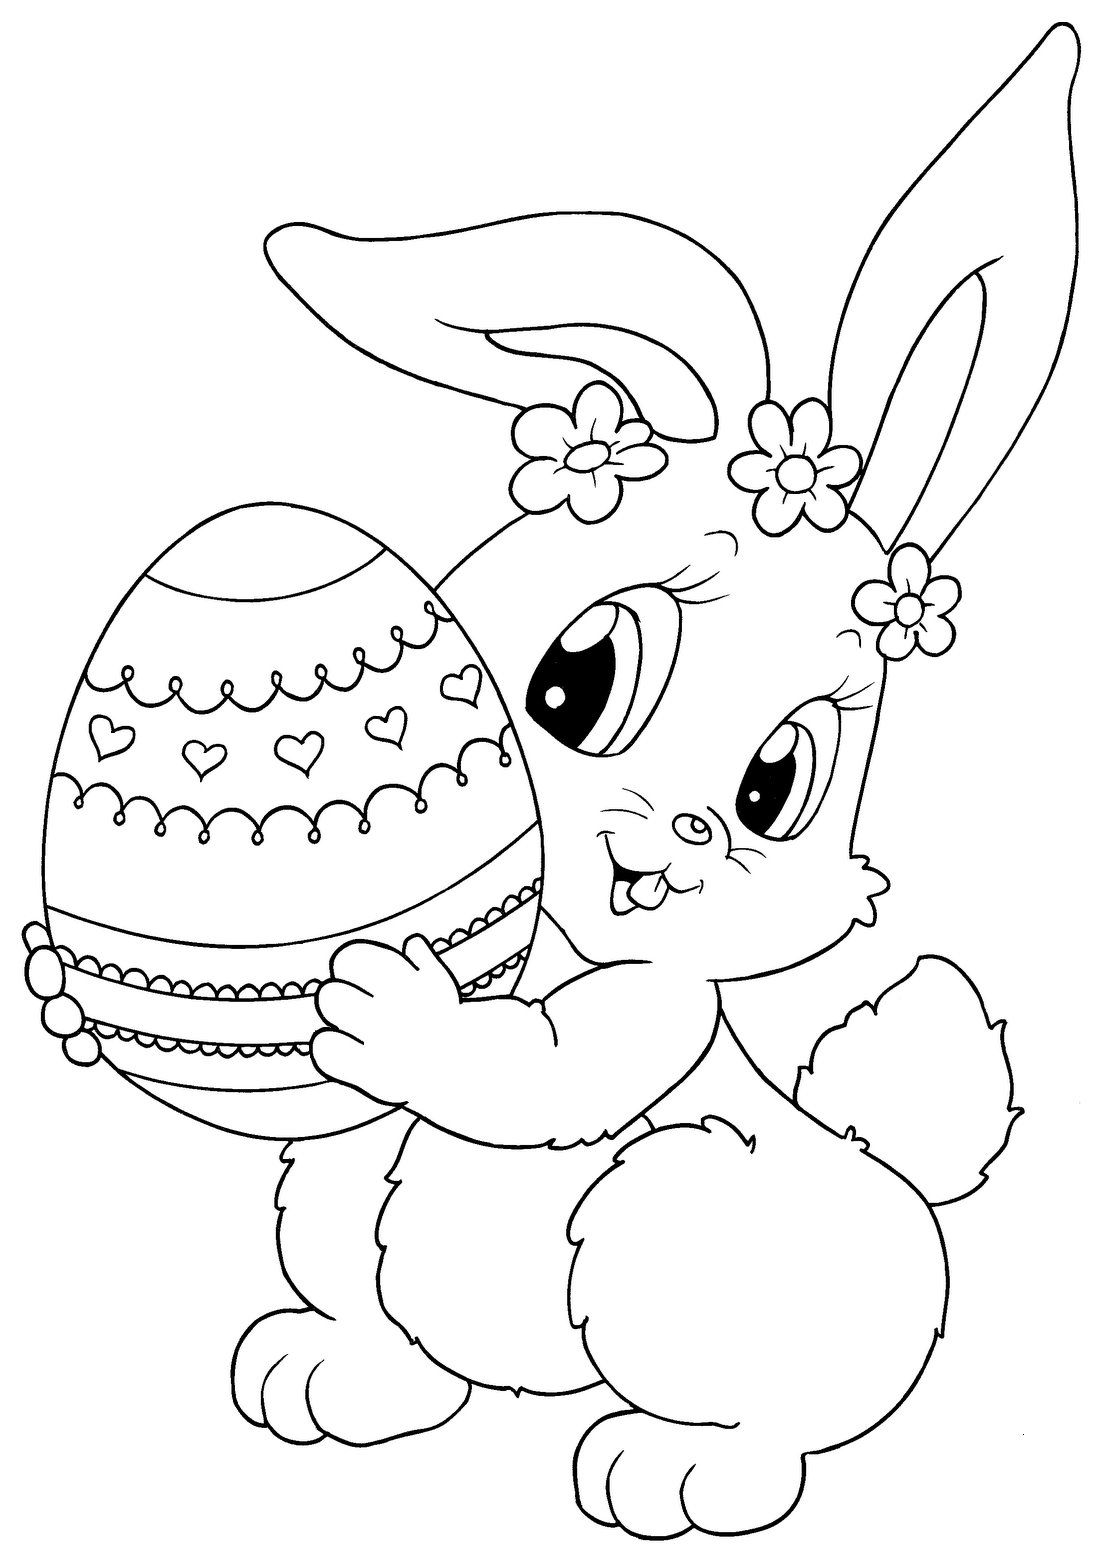 Coloring Pages For Easter Bunny : Top free printable easter bunny coloring pages online